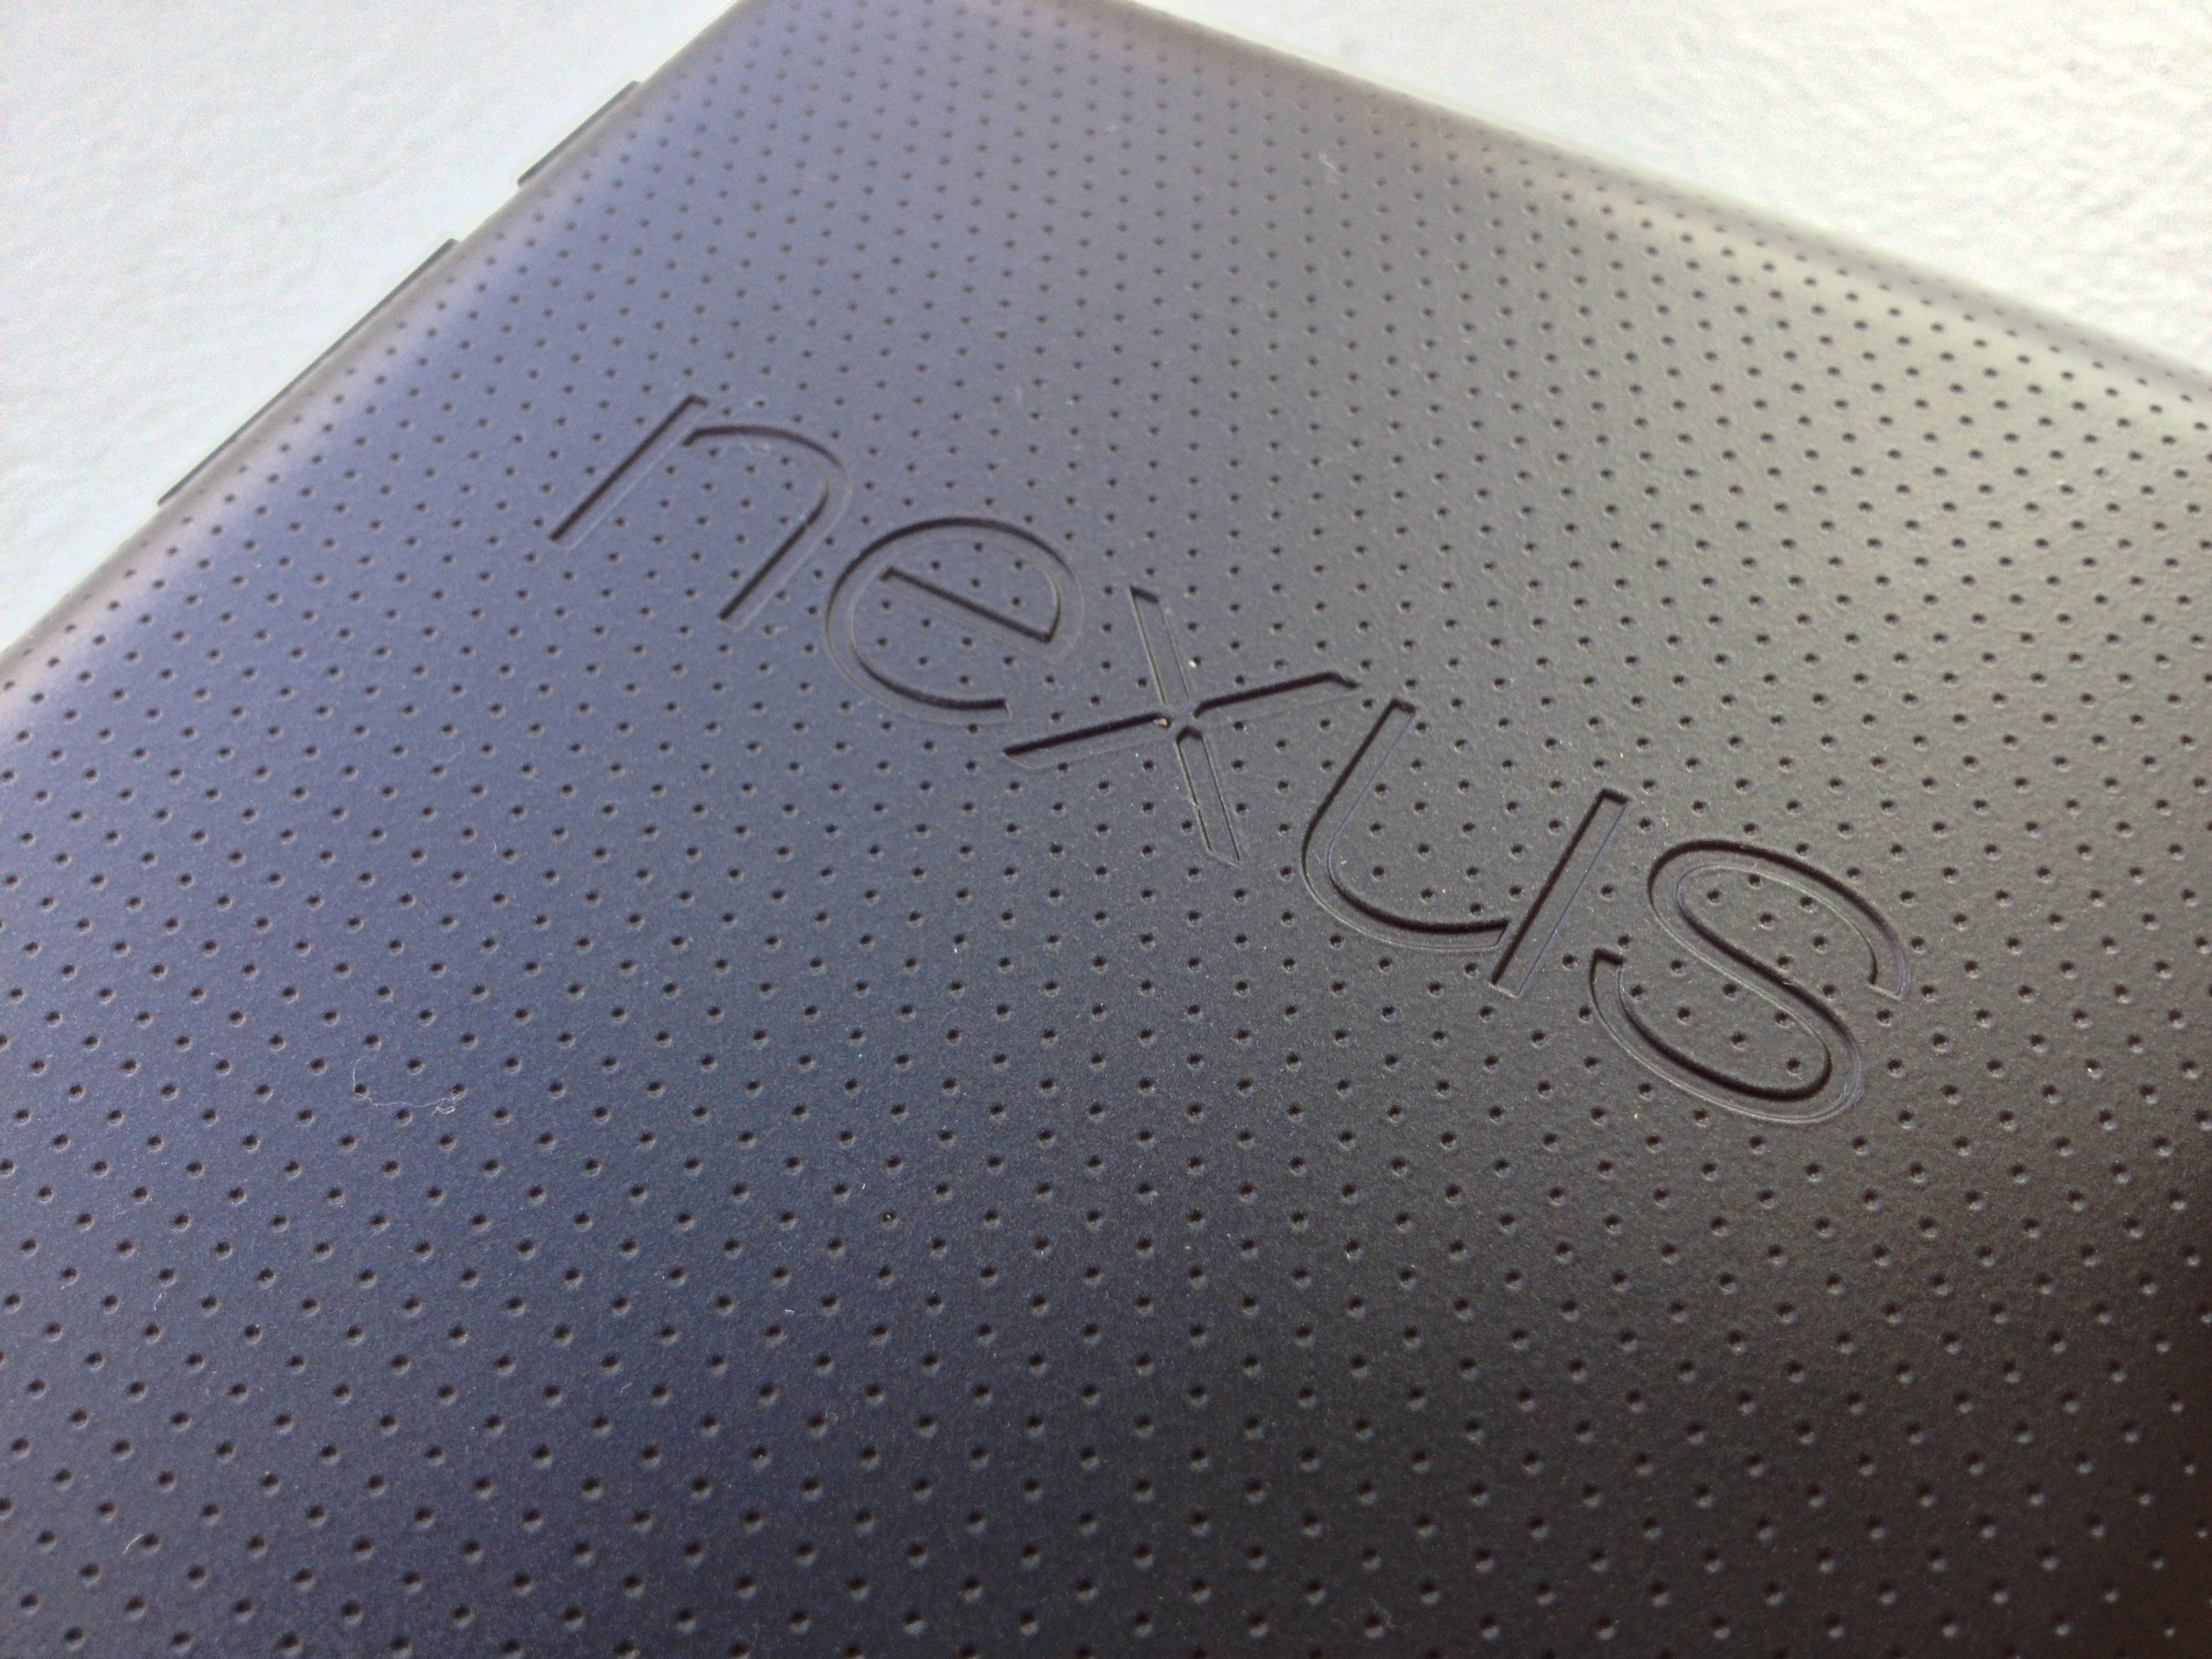 FCC clears 3G Nexus 7 in preparation for Google's Android event on October 29